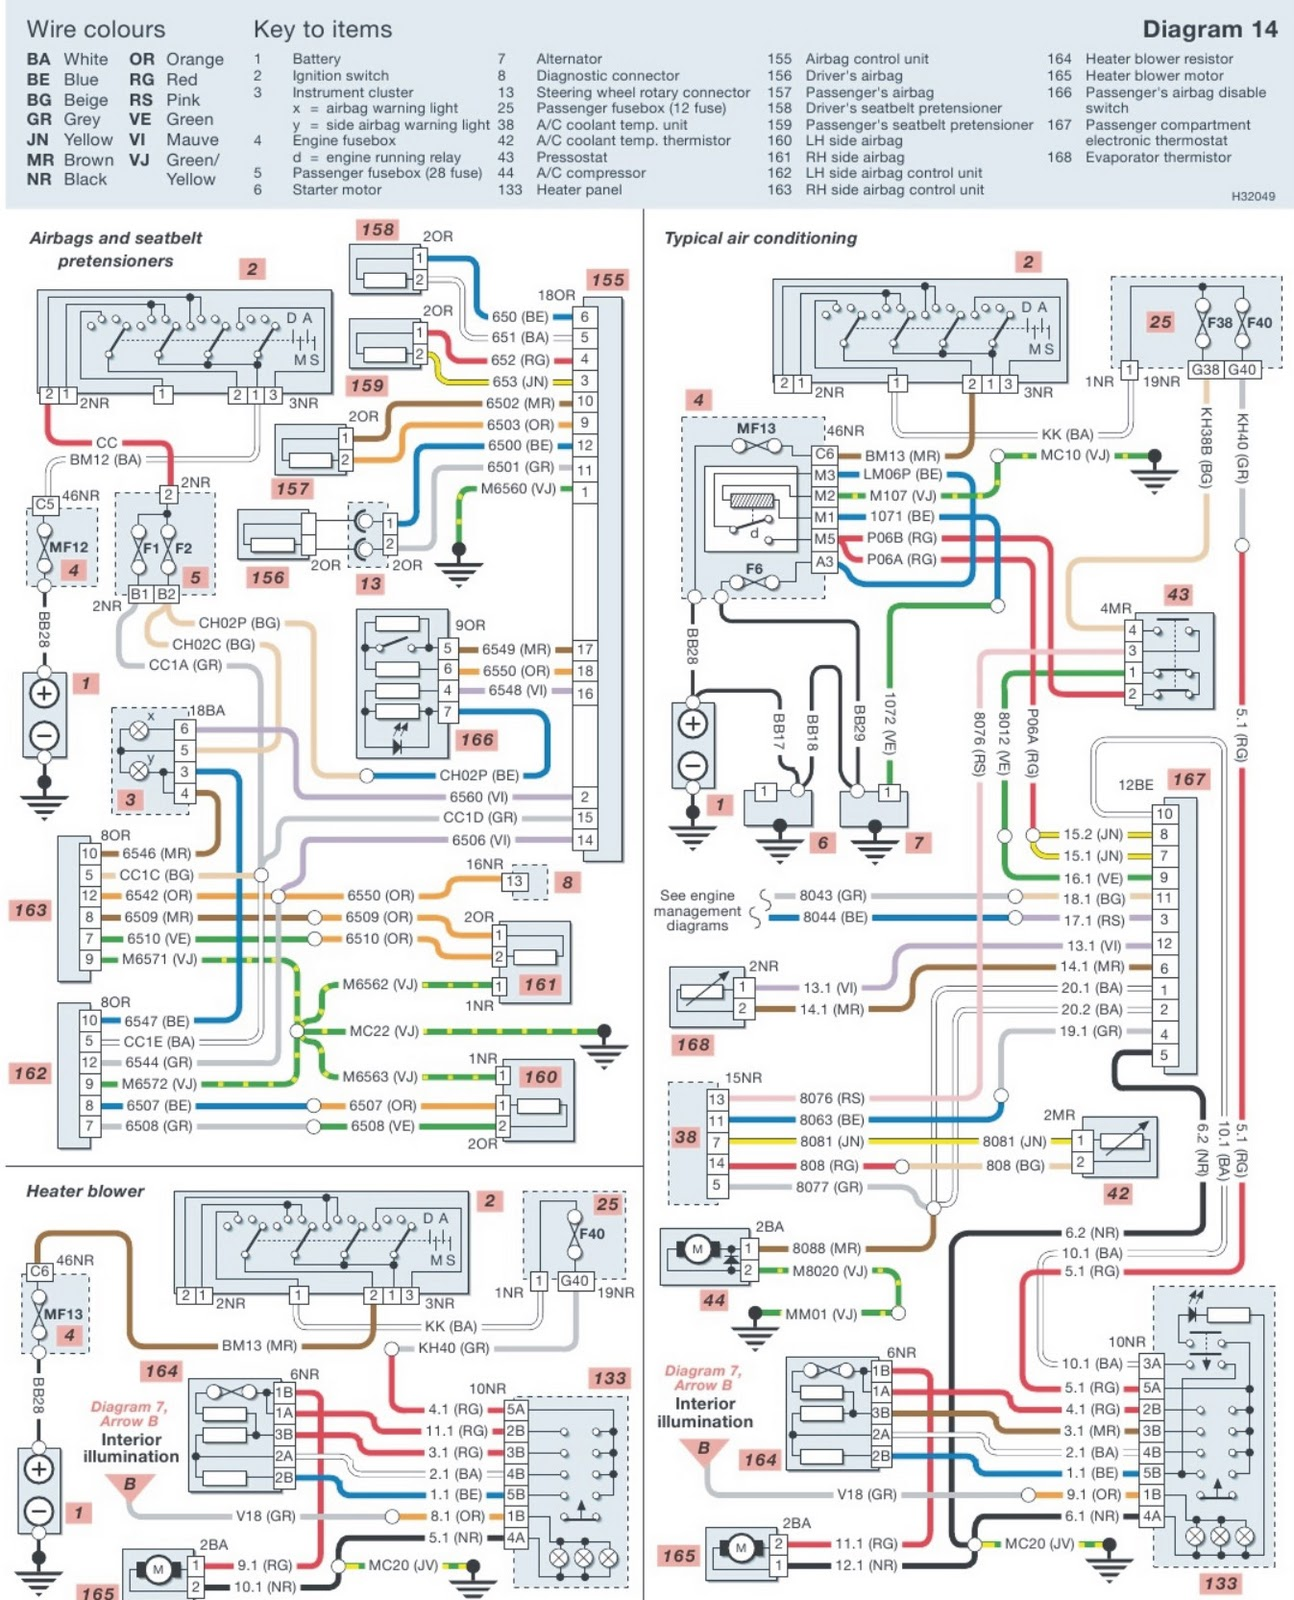 Peugeot 2006 System Wiring Diagrams Airbags, heater blower, air conditioning | Schematic Wiring